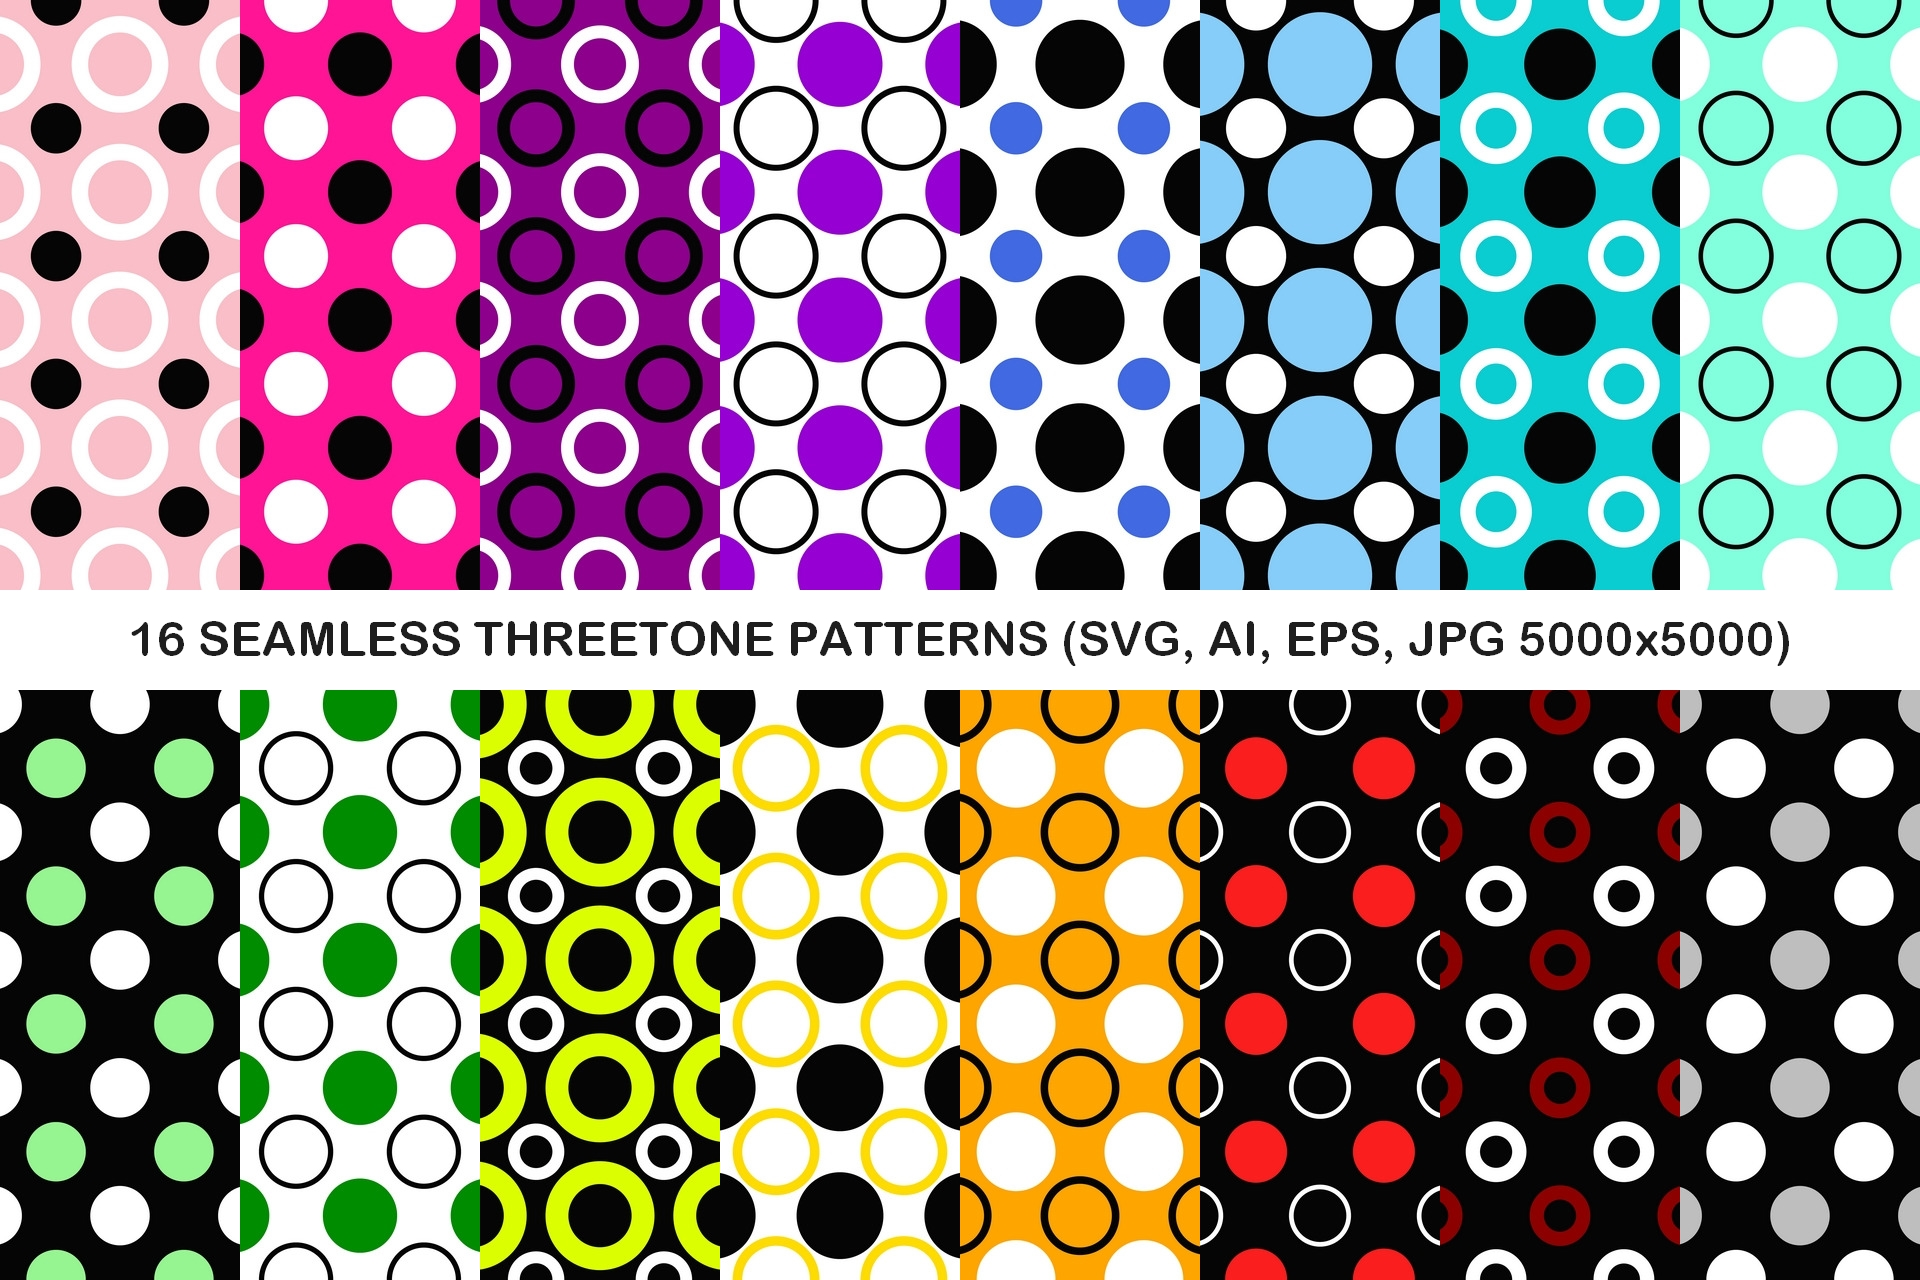 Download Free 16 Seamless Threetone Circle Patterns Graphic By Davidzydd for Cricut Explore, Silhouette and other cutting machines.